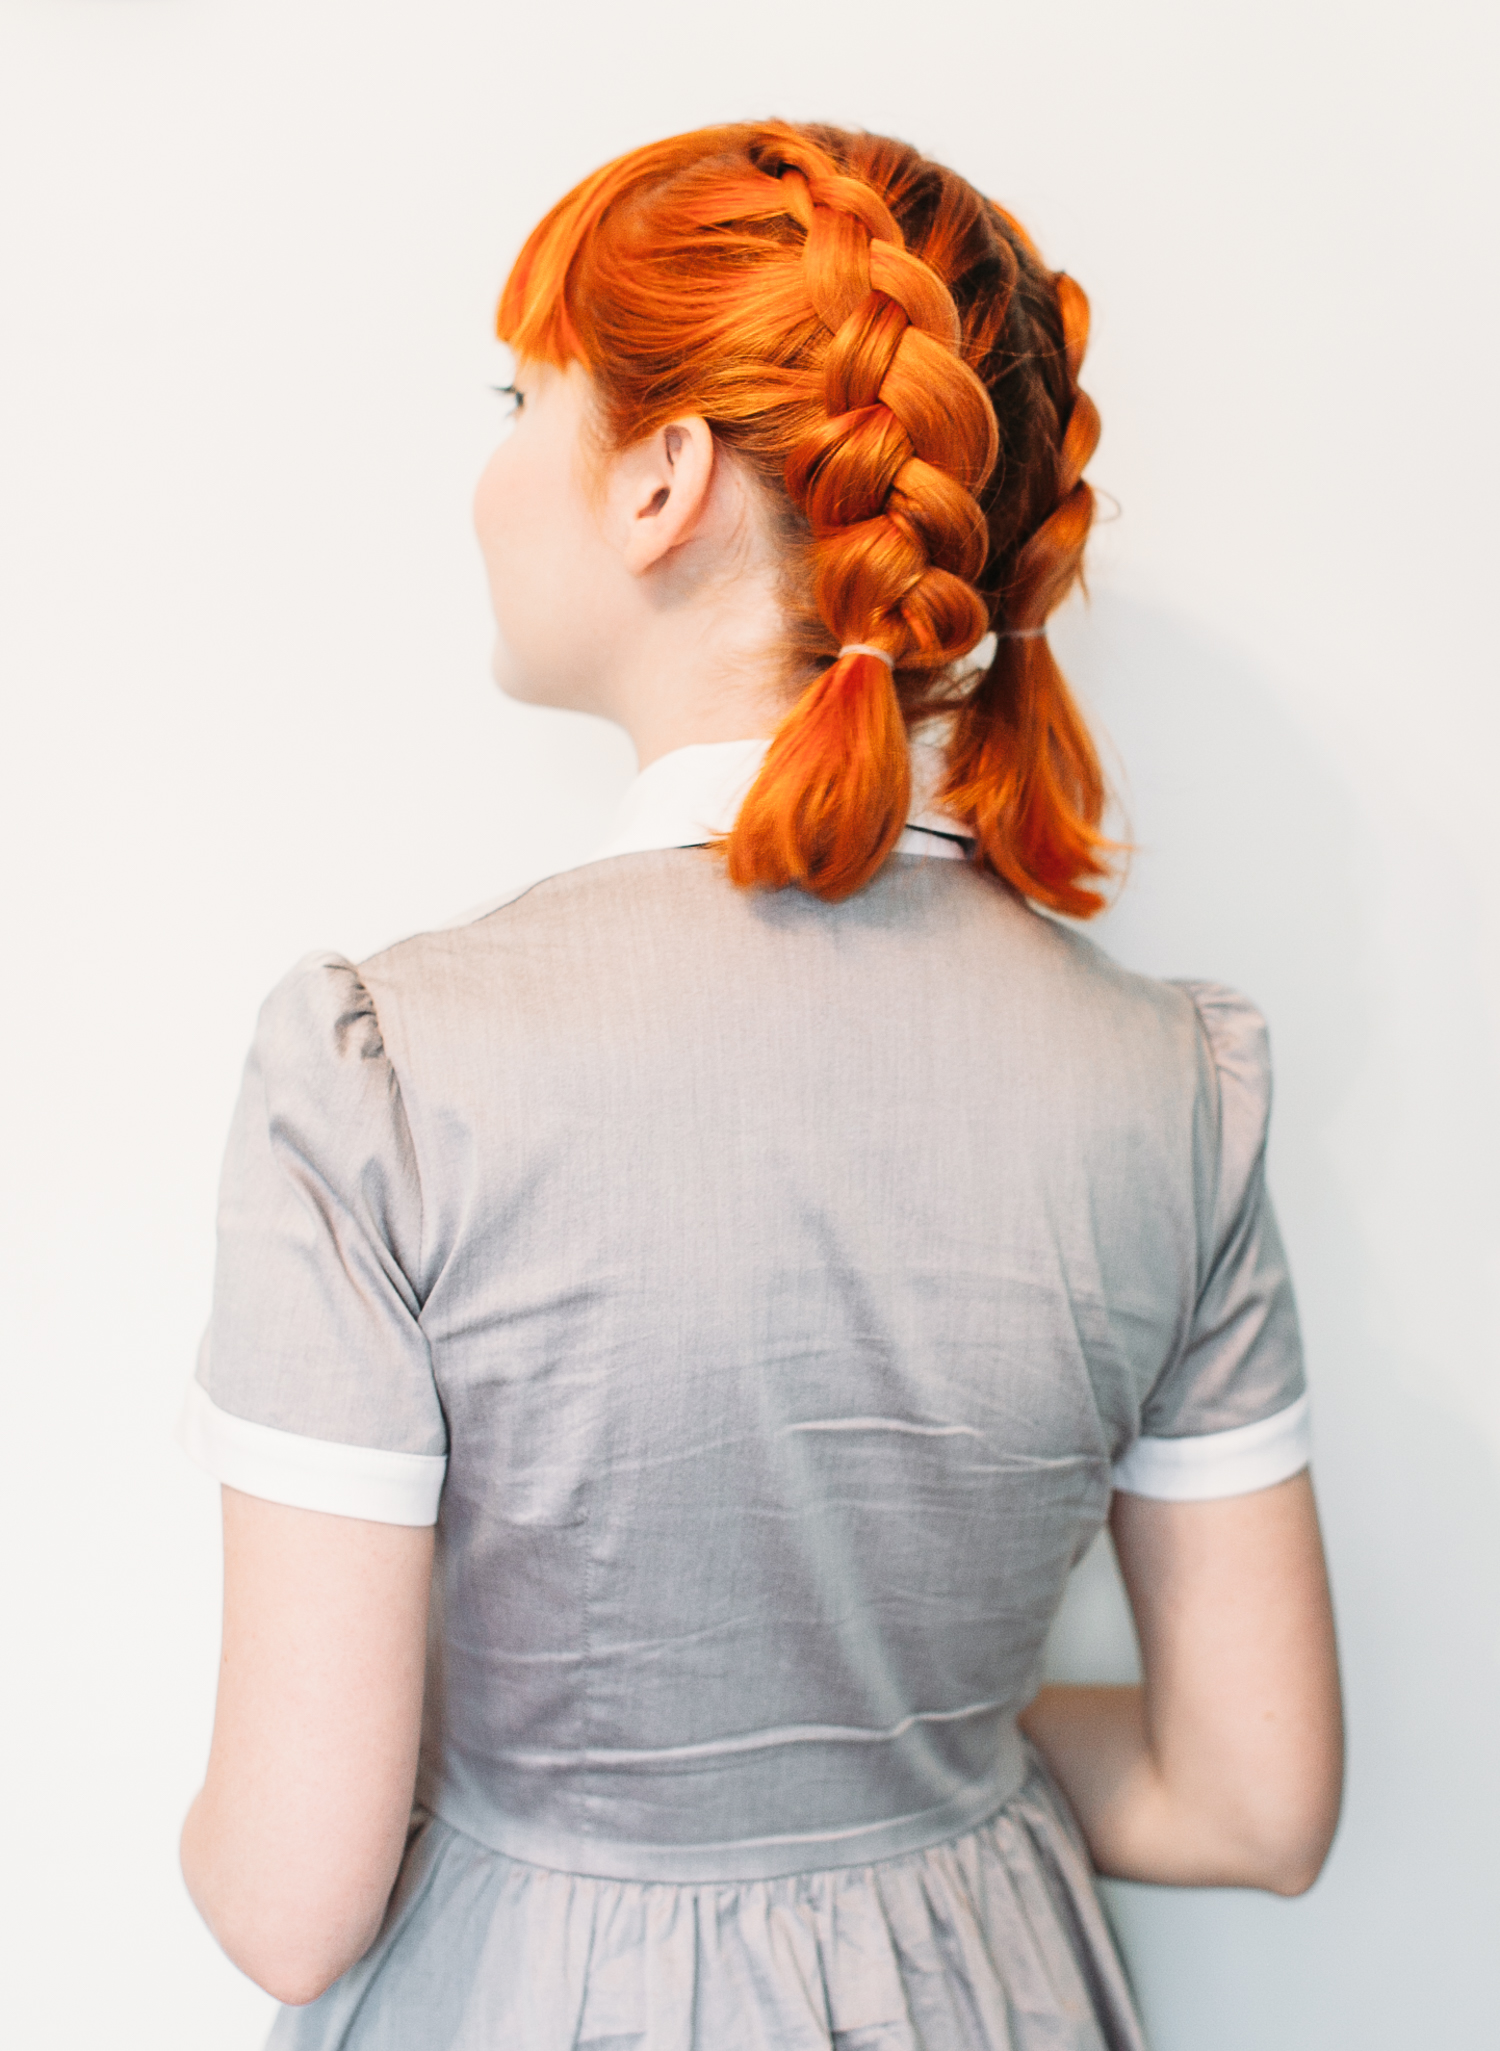 Double dutch pigtails for short hair (click-through for the full tutorial)